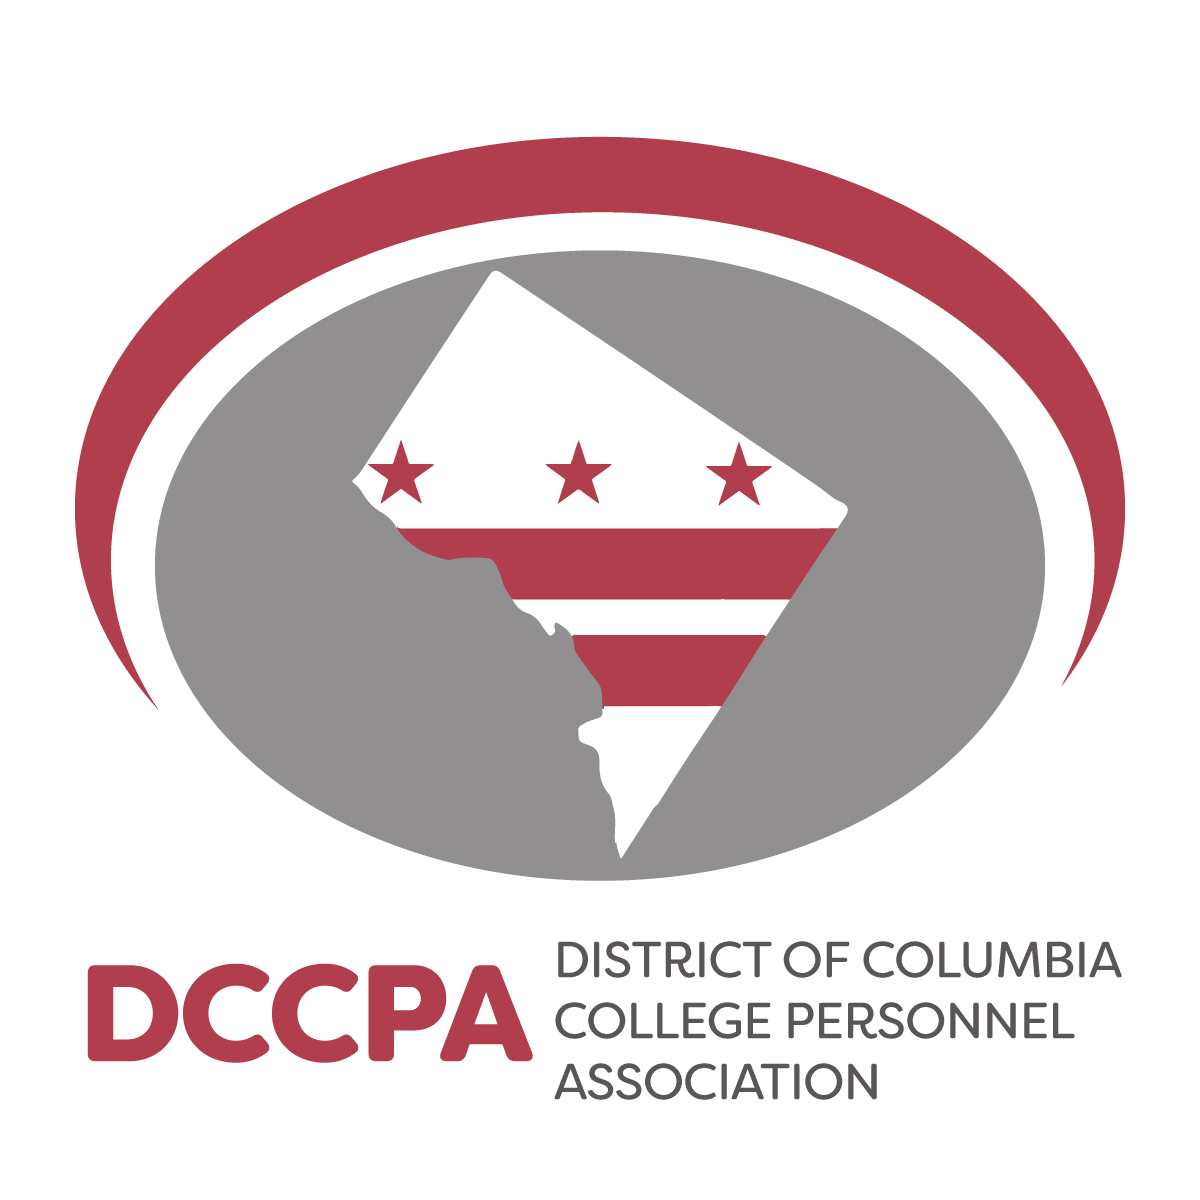 DCCPA logo featuring the DC flag inside of the District outline